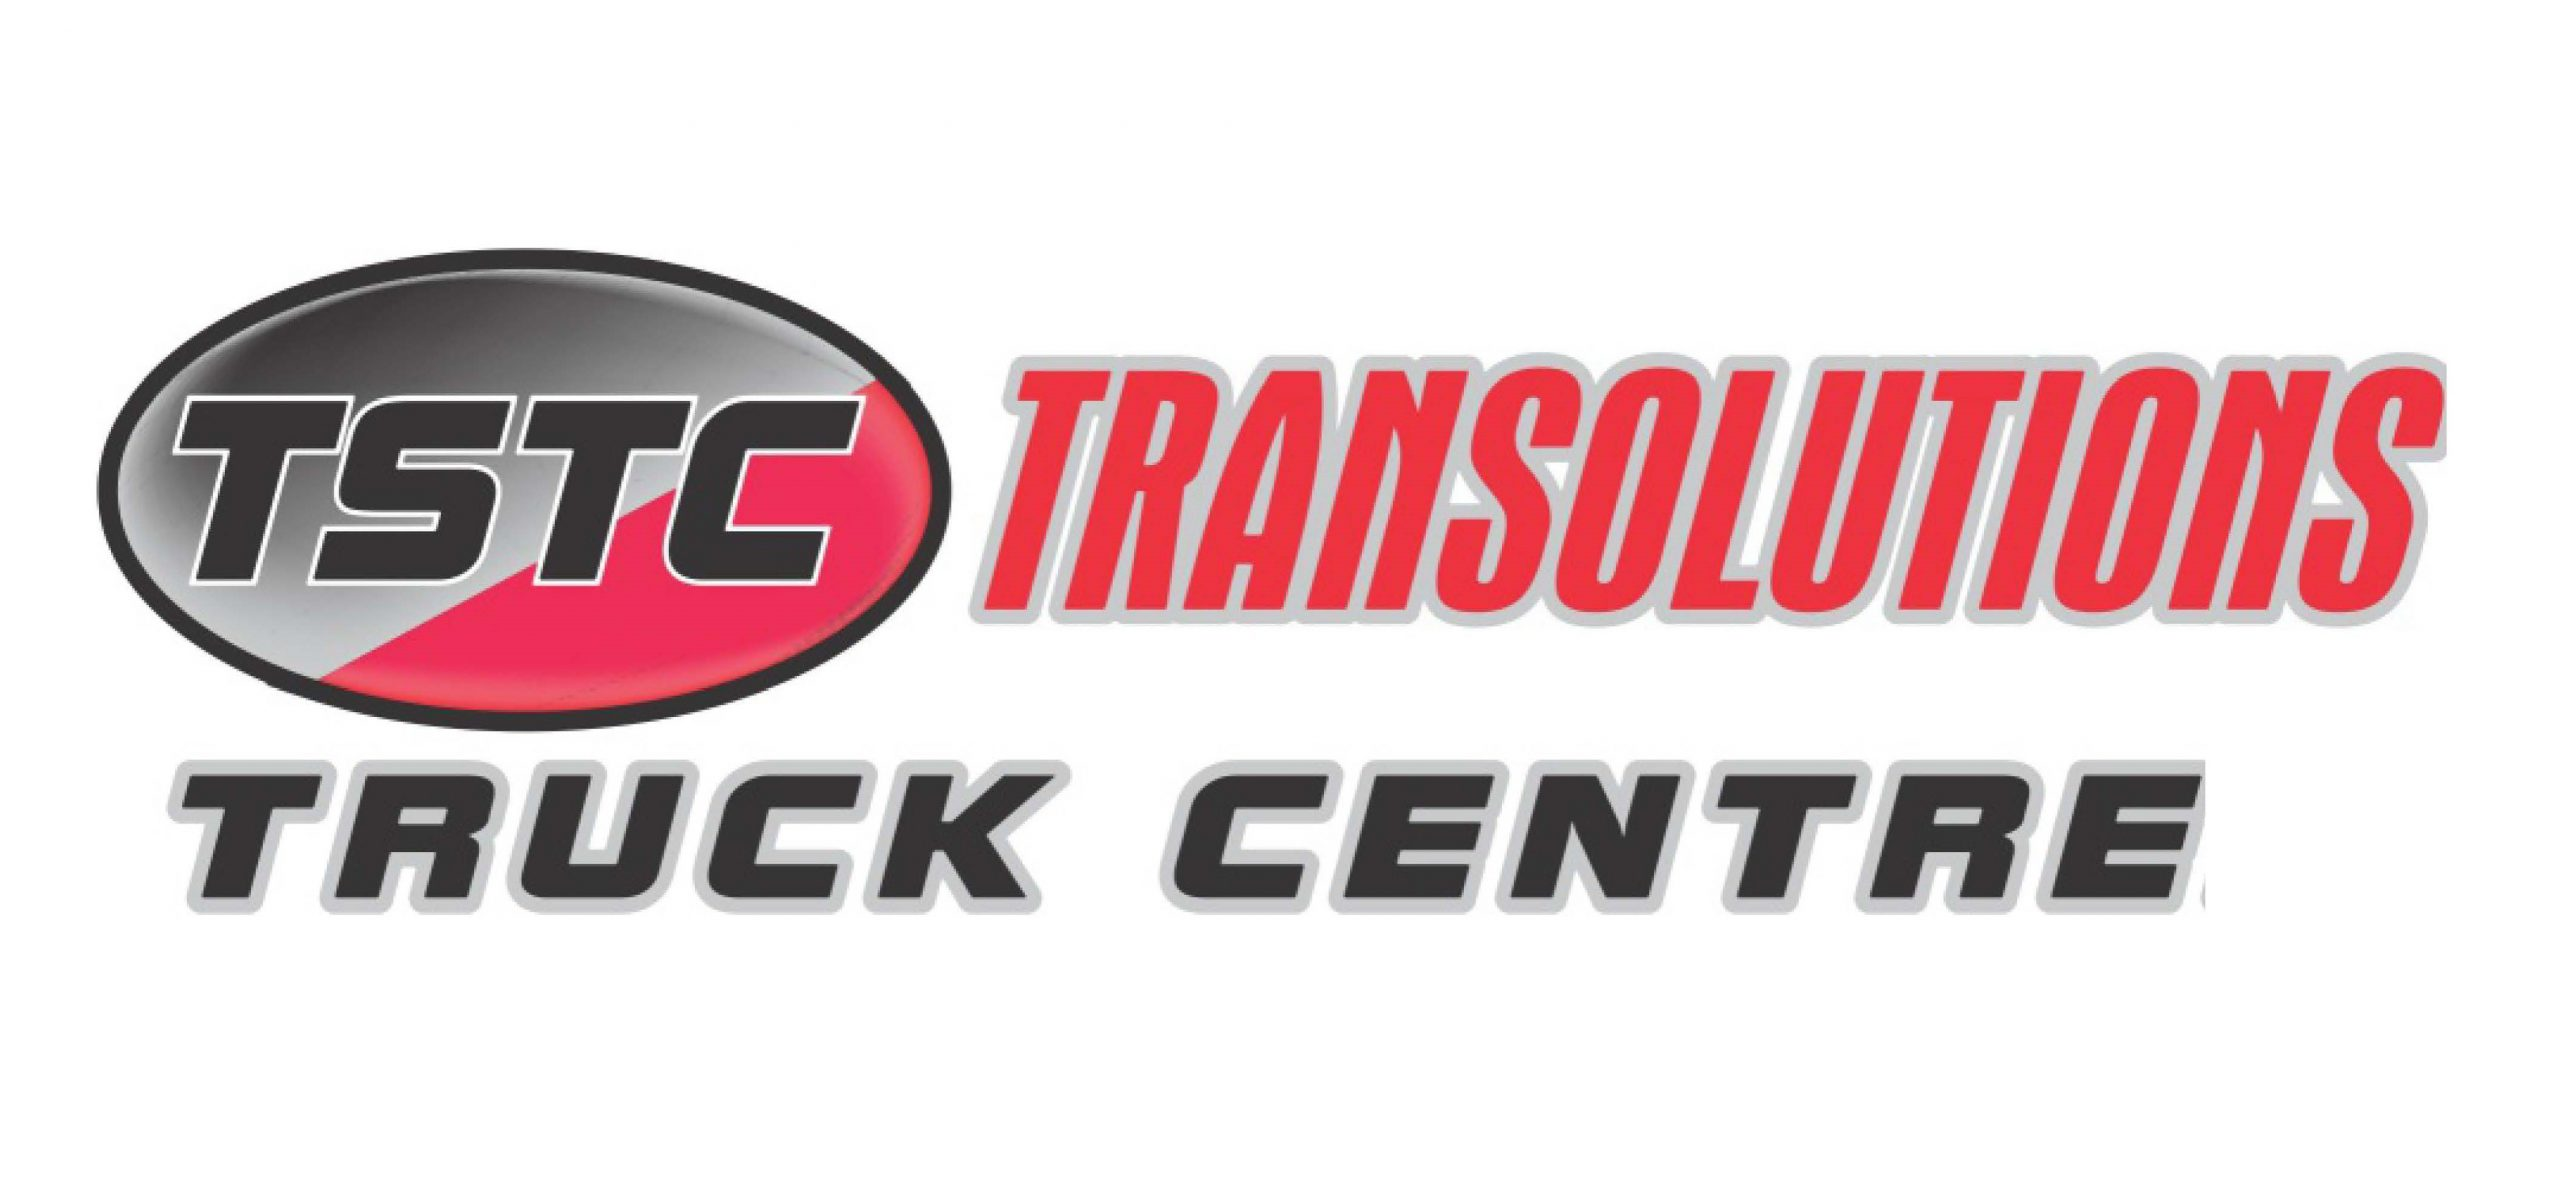 Transolutions Truck Centre logo